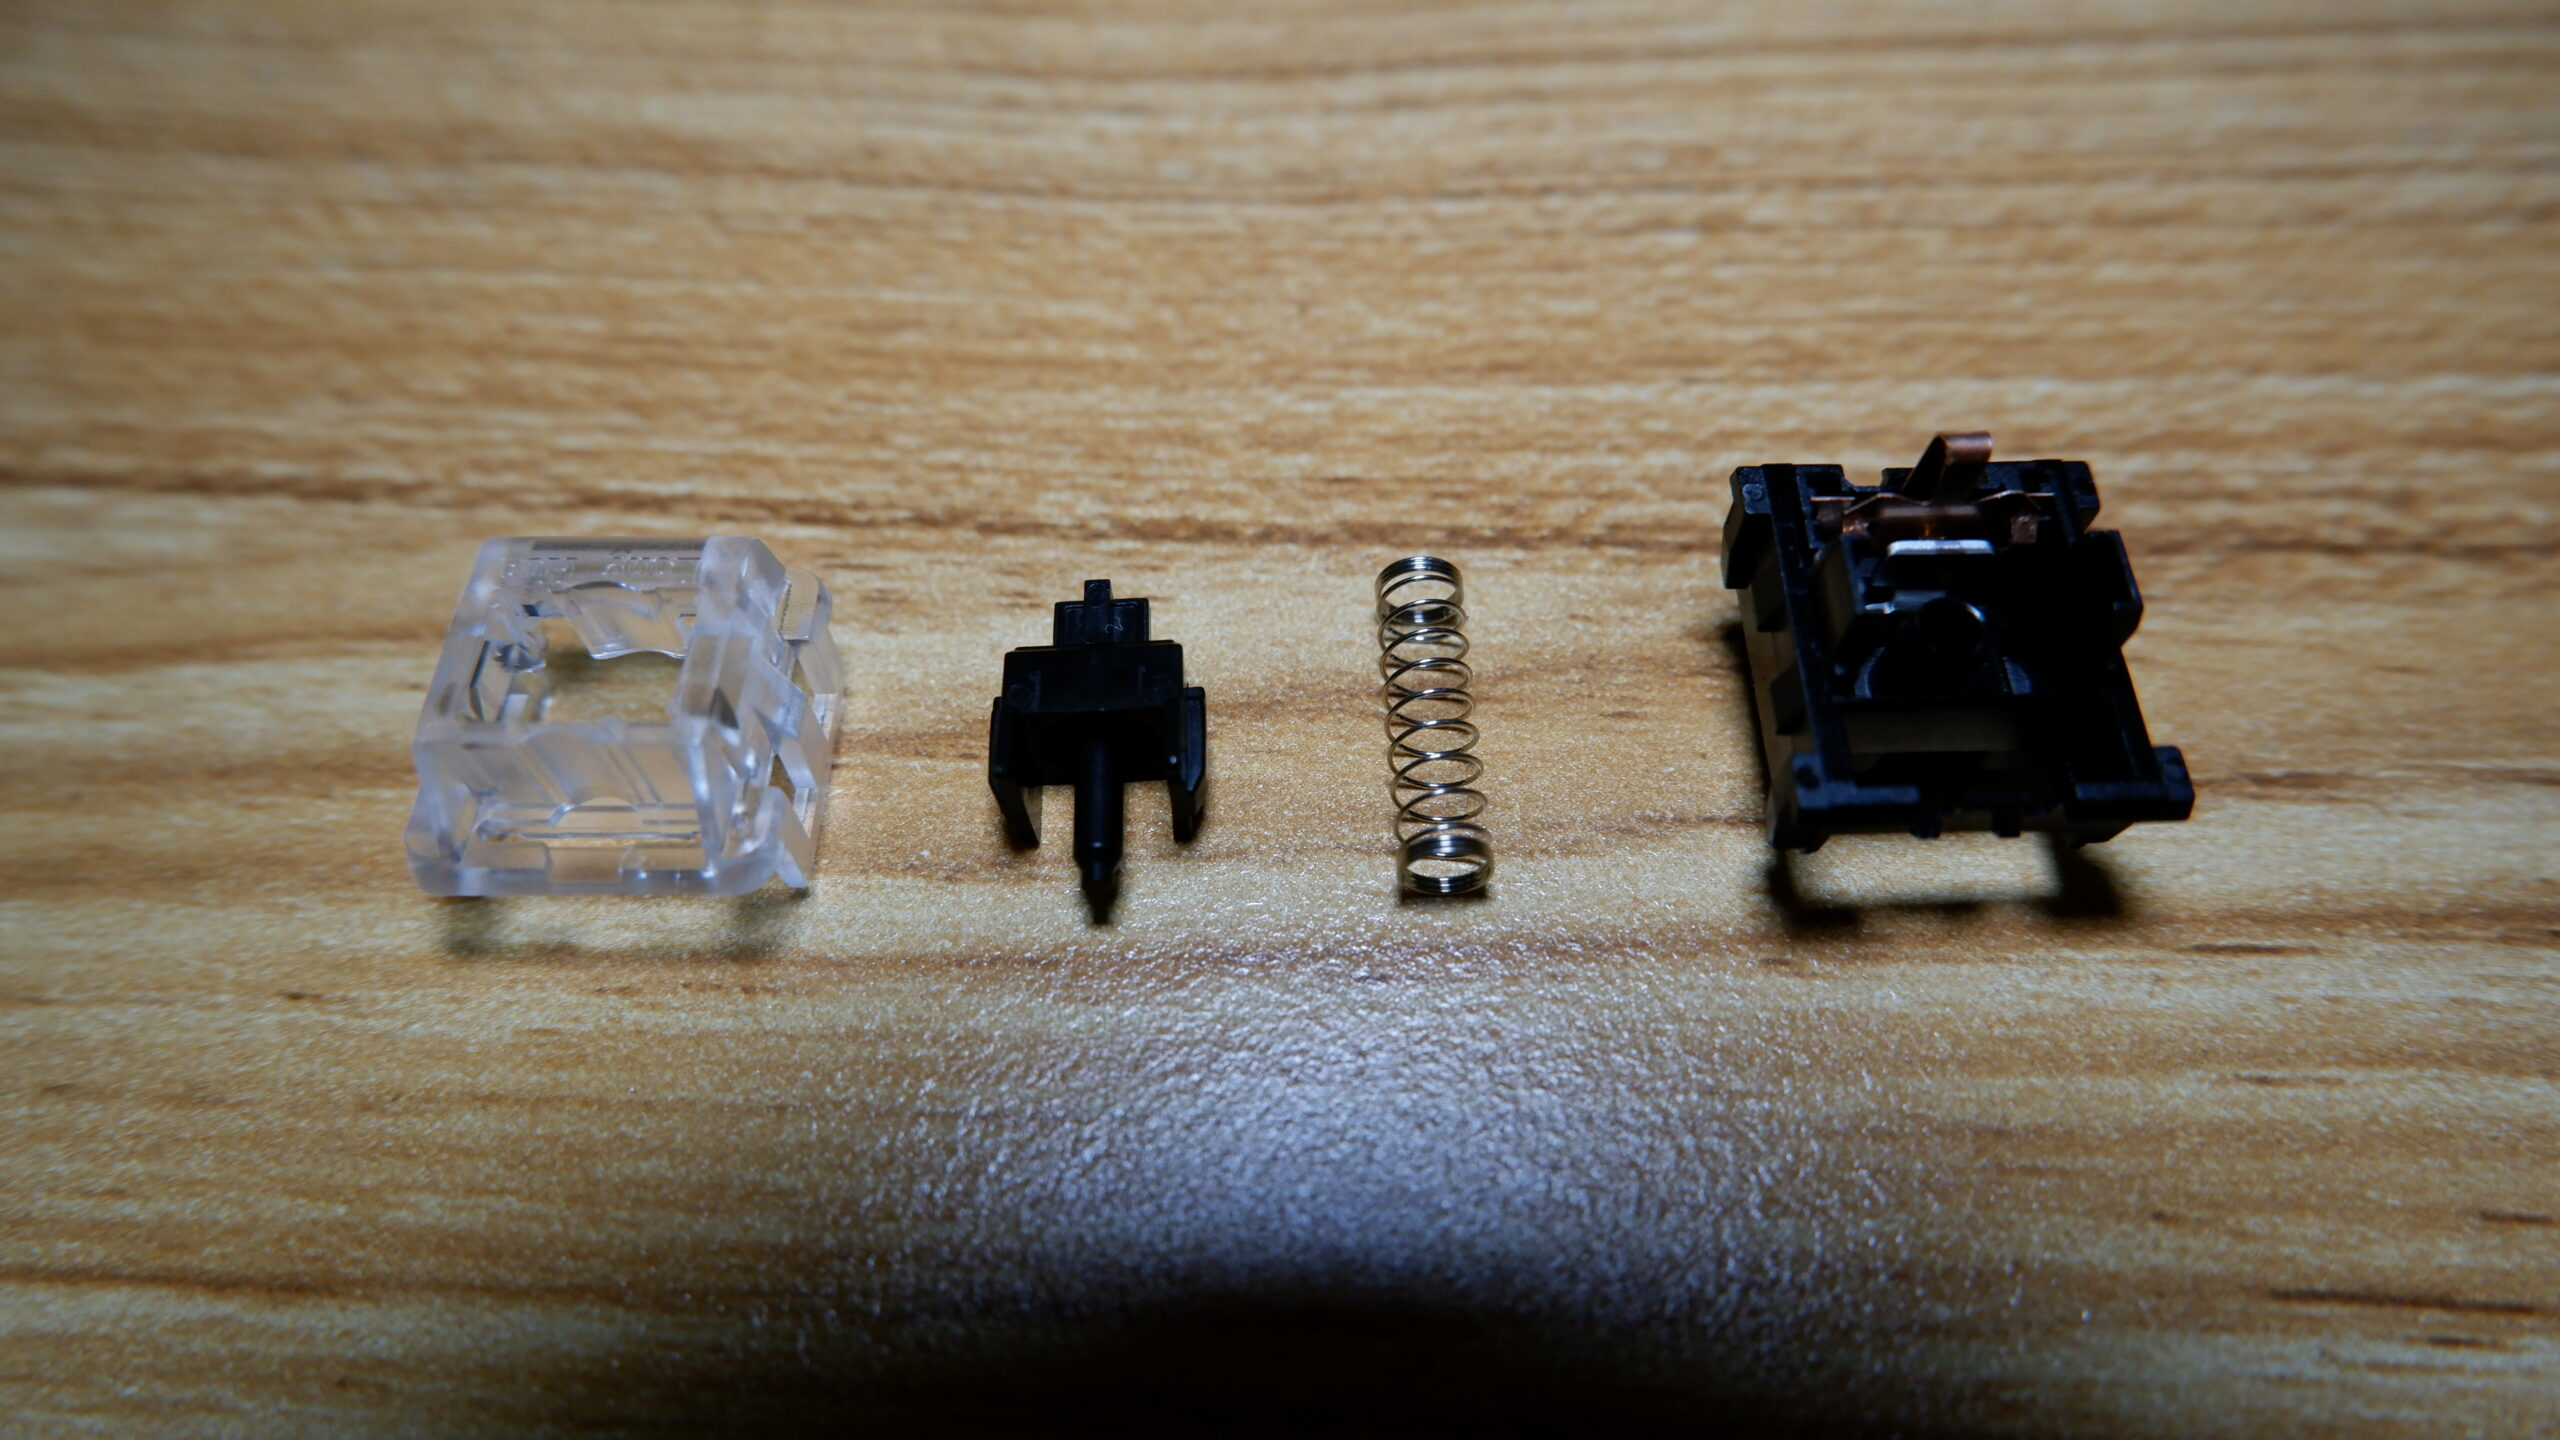 Kailh Black switch disassembled